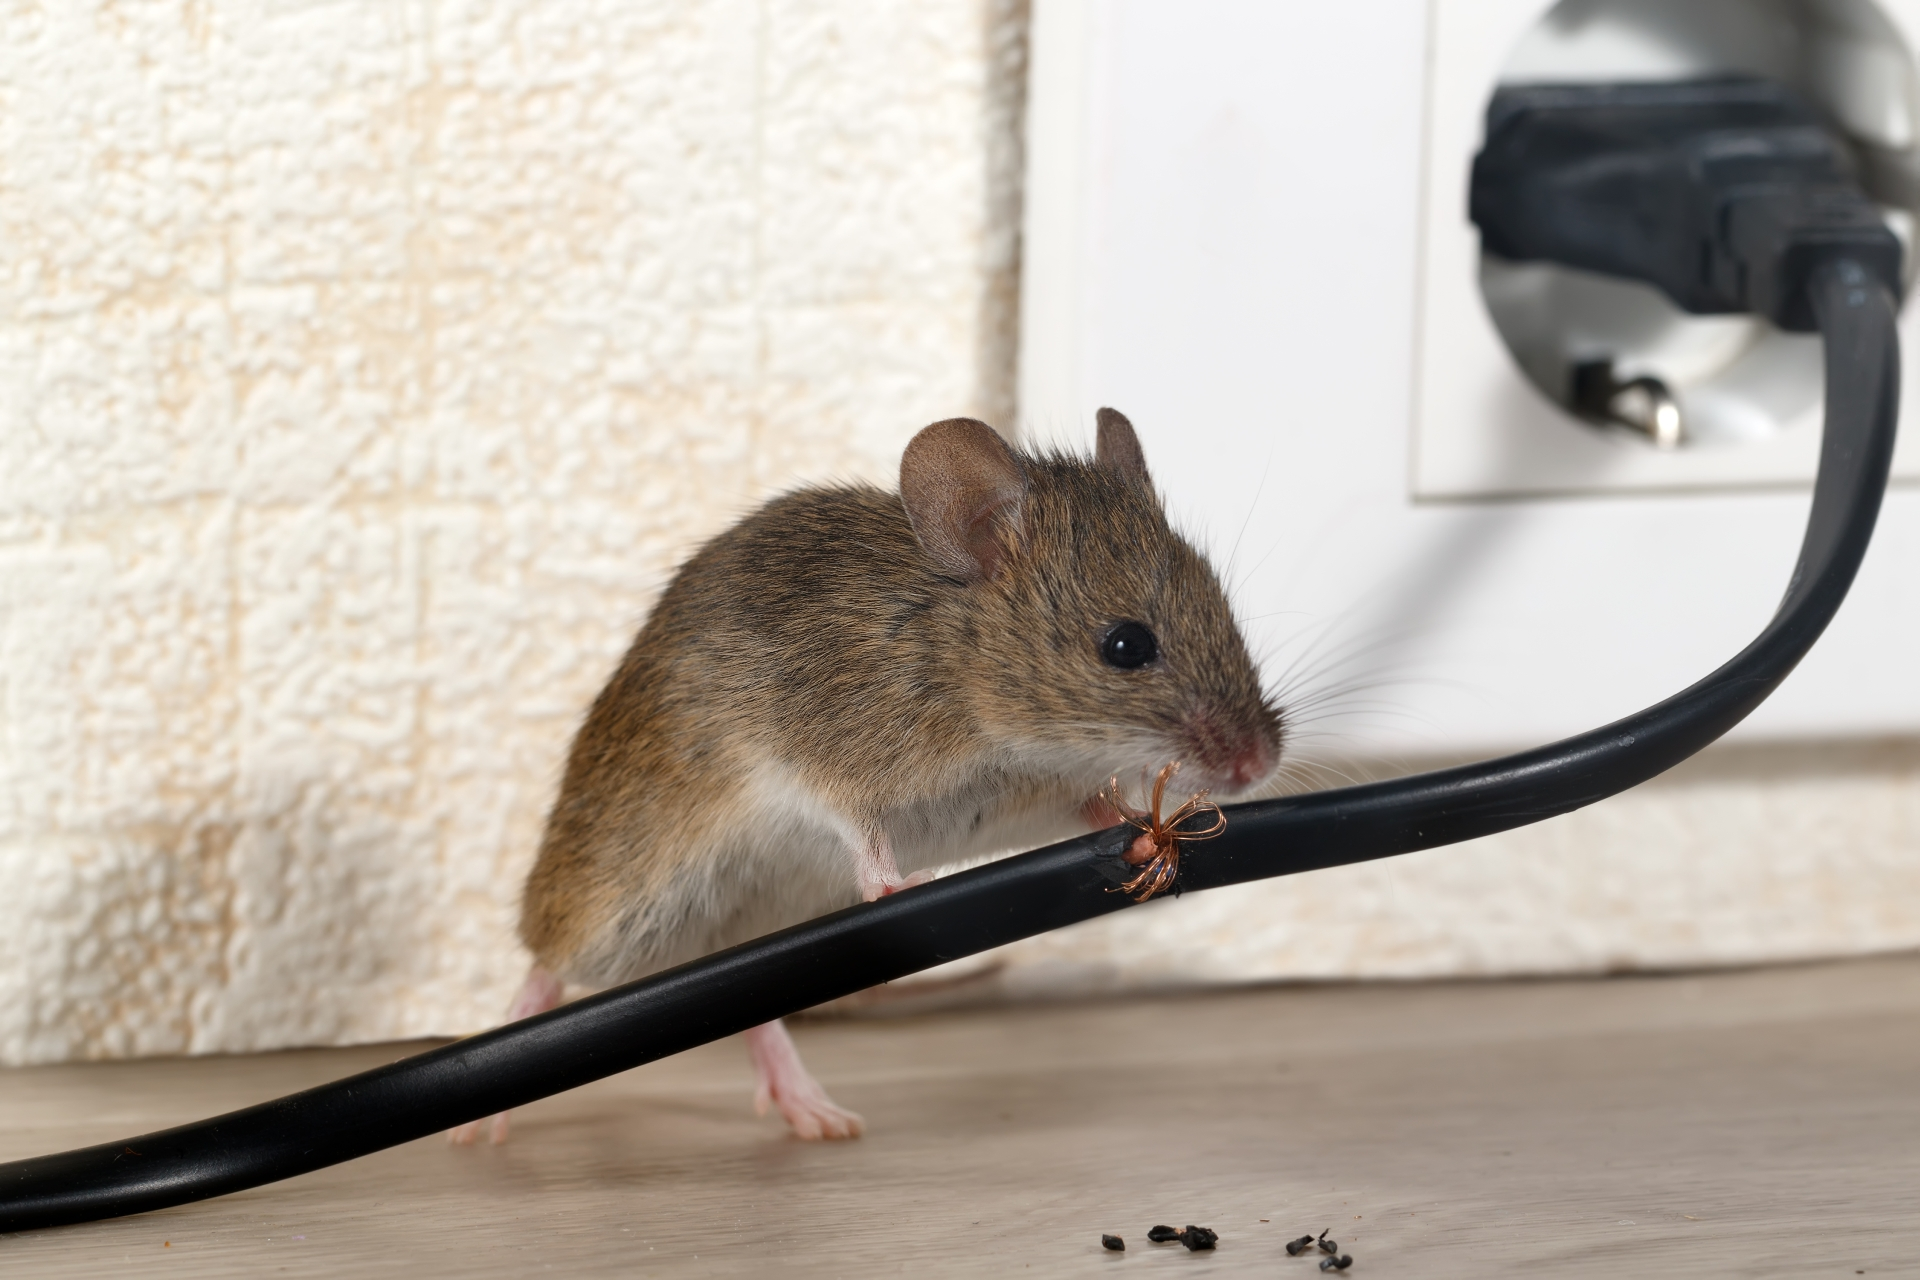 Mice Infestation, Pest Control in Hayes, Harlington, UB3, UB4. Call Now 020 8166 9746